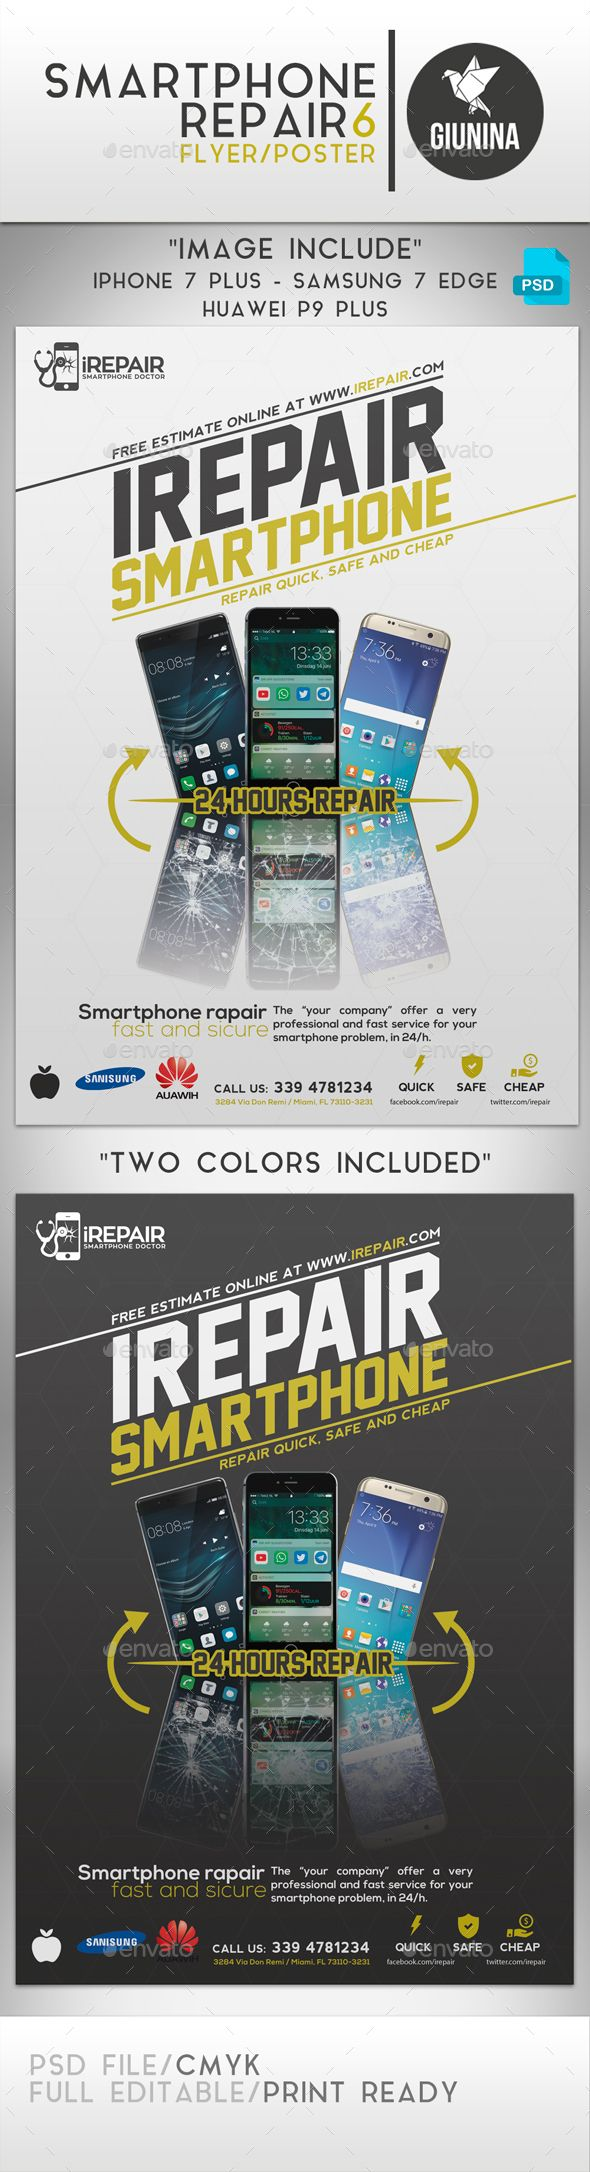 Smartphone Repair  FlyerPoster  Psd Templates Smartphone And